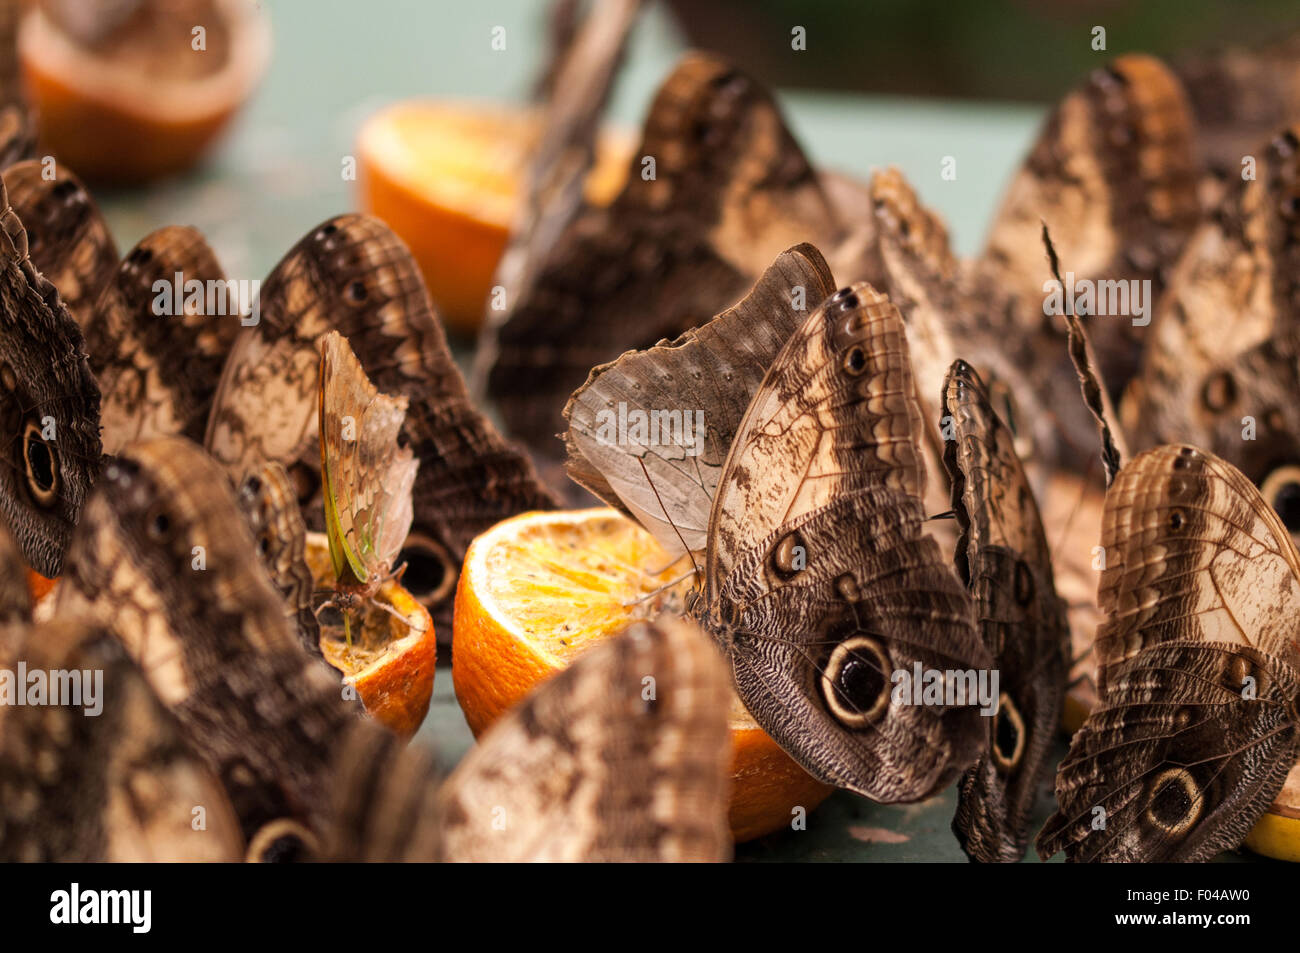 "Caligo "" Owl Butterflies"" feasting on oranges at Sensational Butterflies Exhibition, Natural History Museum, London Stock Photo"